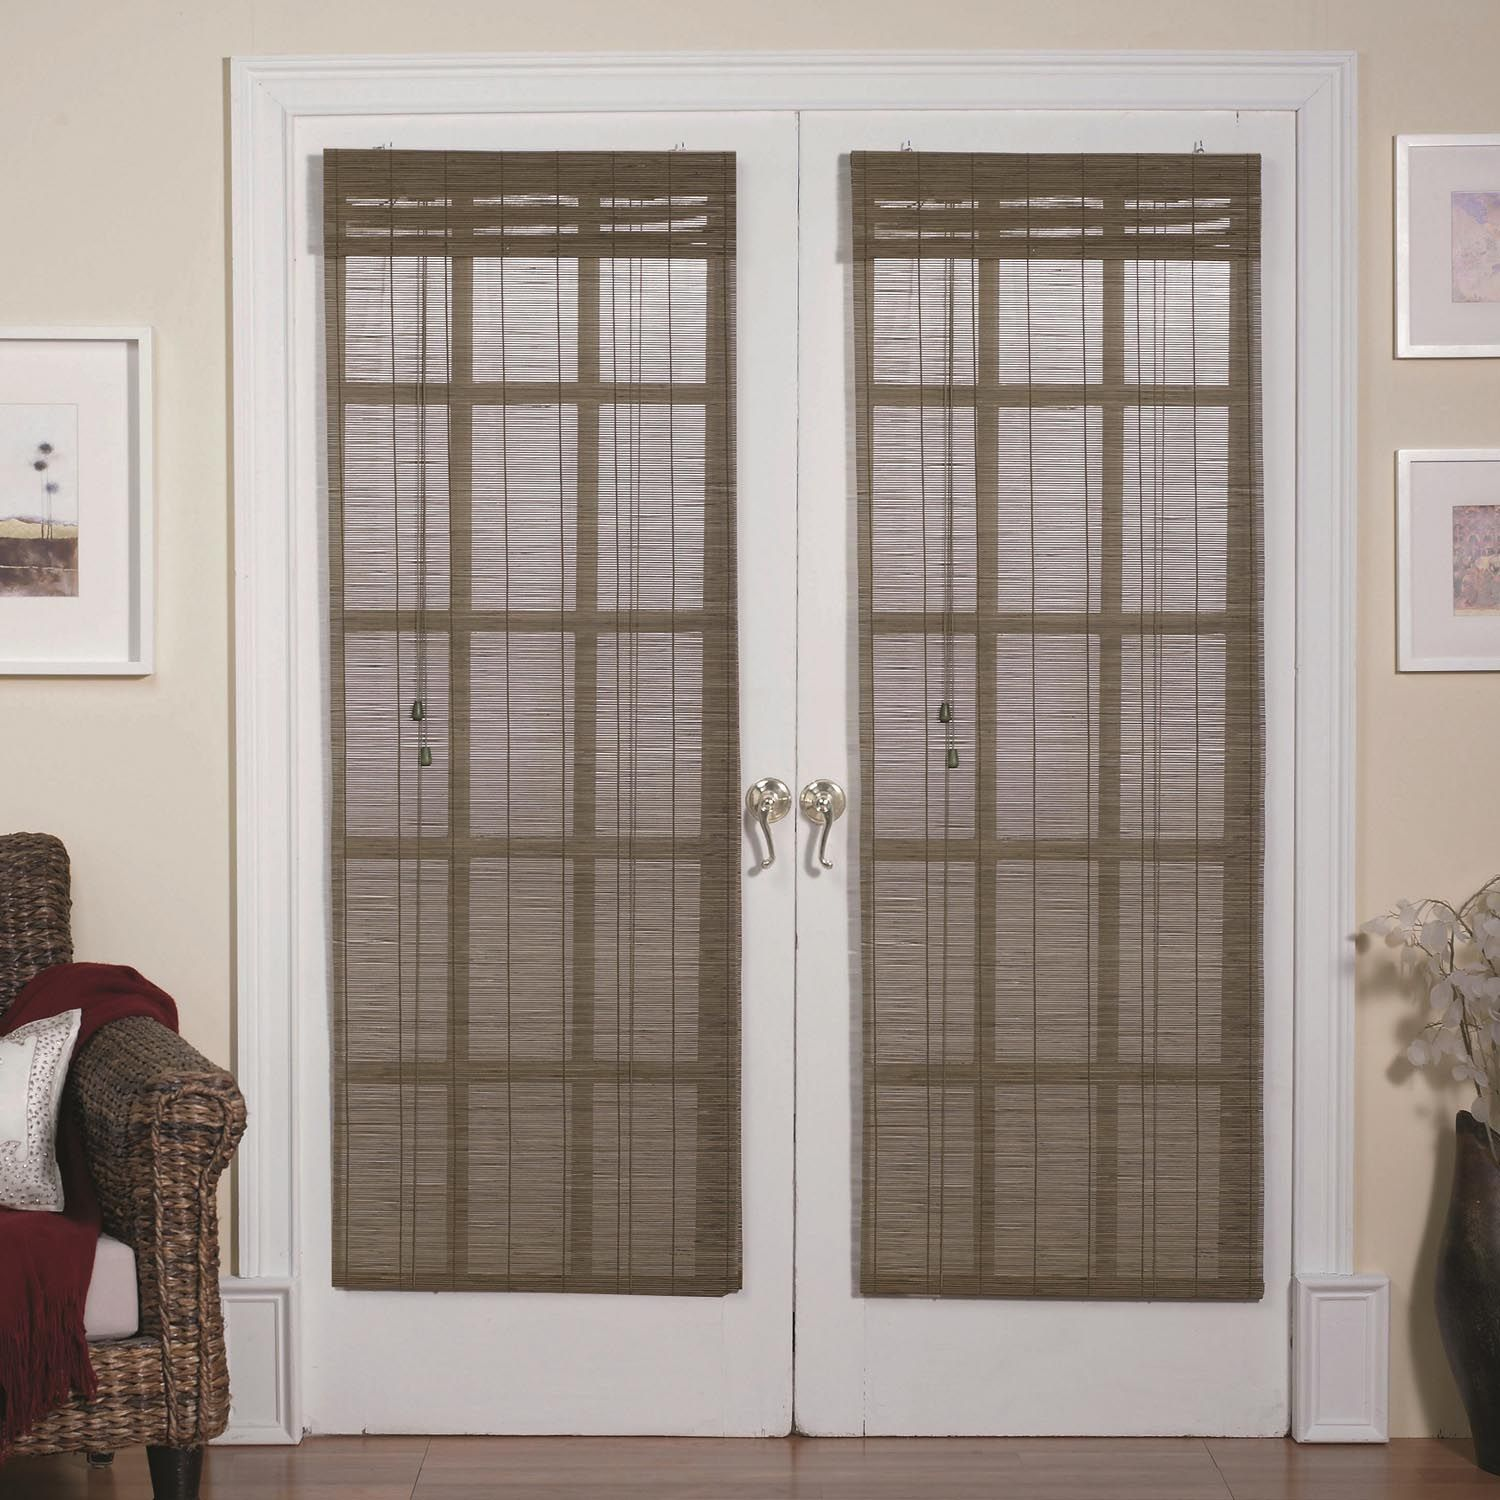 Magnetic Roman Shades For French Doors | Window Shades | Pinterest | Roman,  Doors And Door Shades